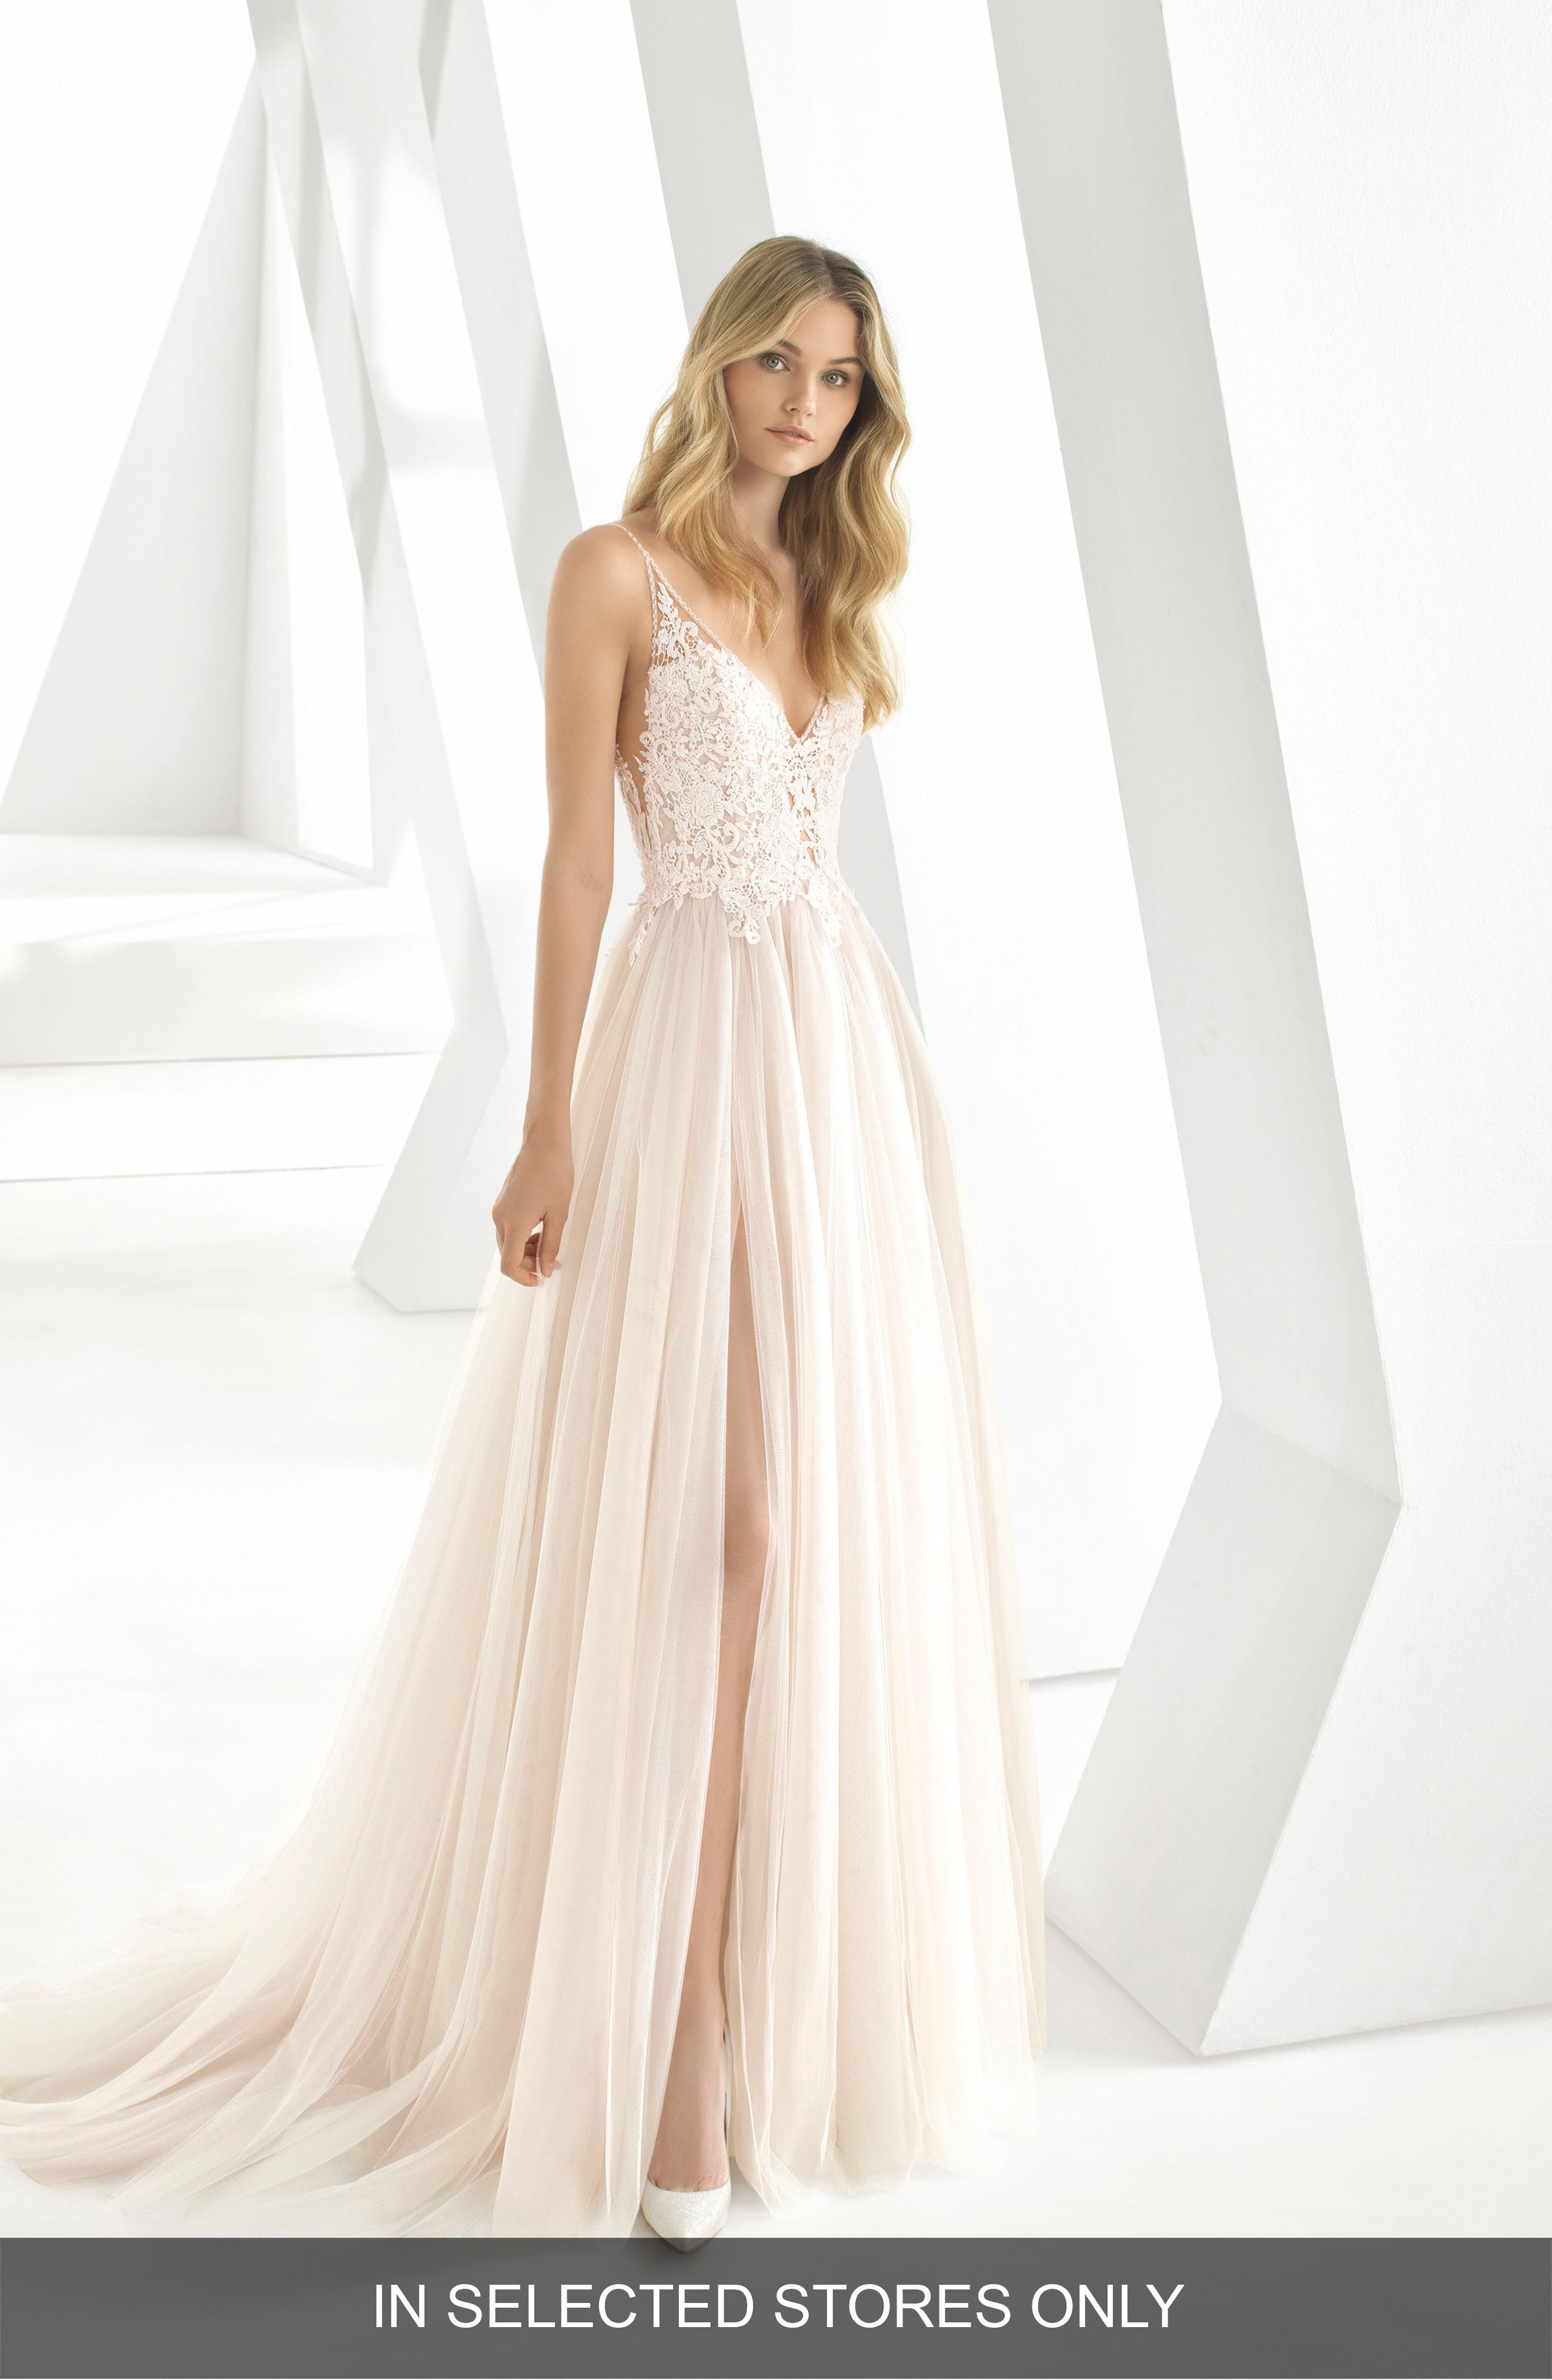 Donata Front Slit Lace & Tulle Wedding Gown,                             Main thumbnail 1, color,                             NATURAL/ NUDE